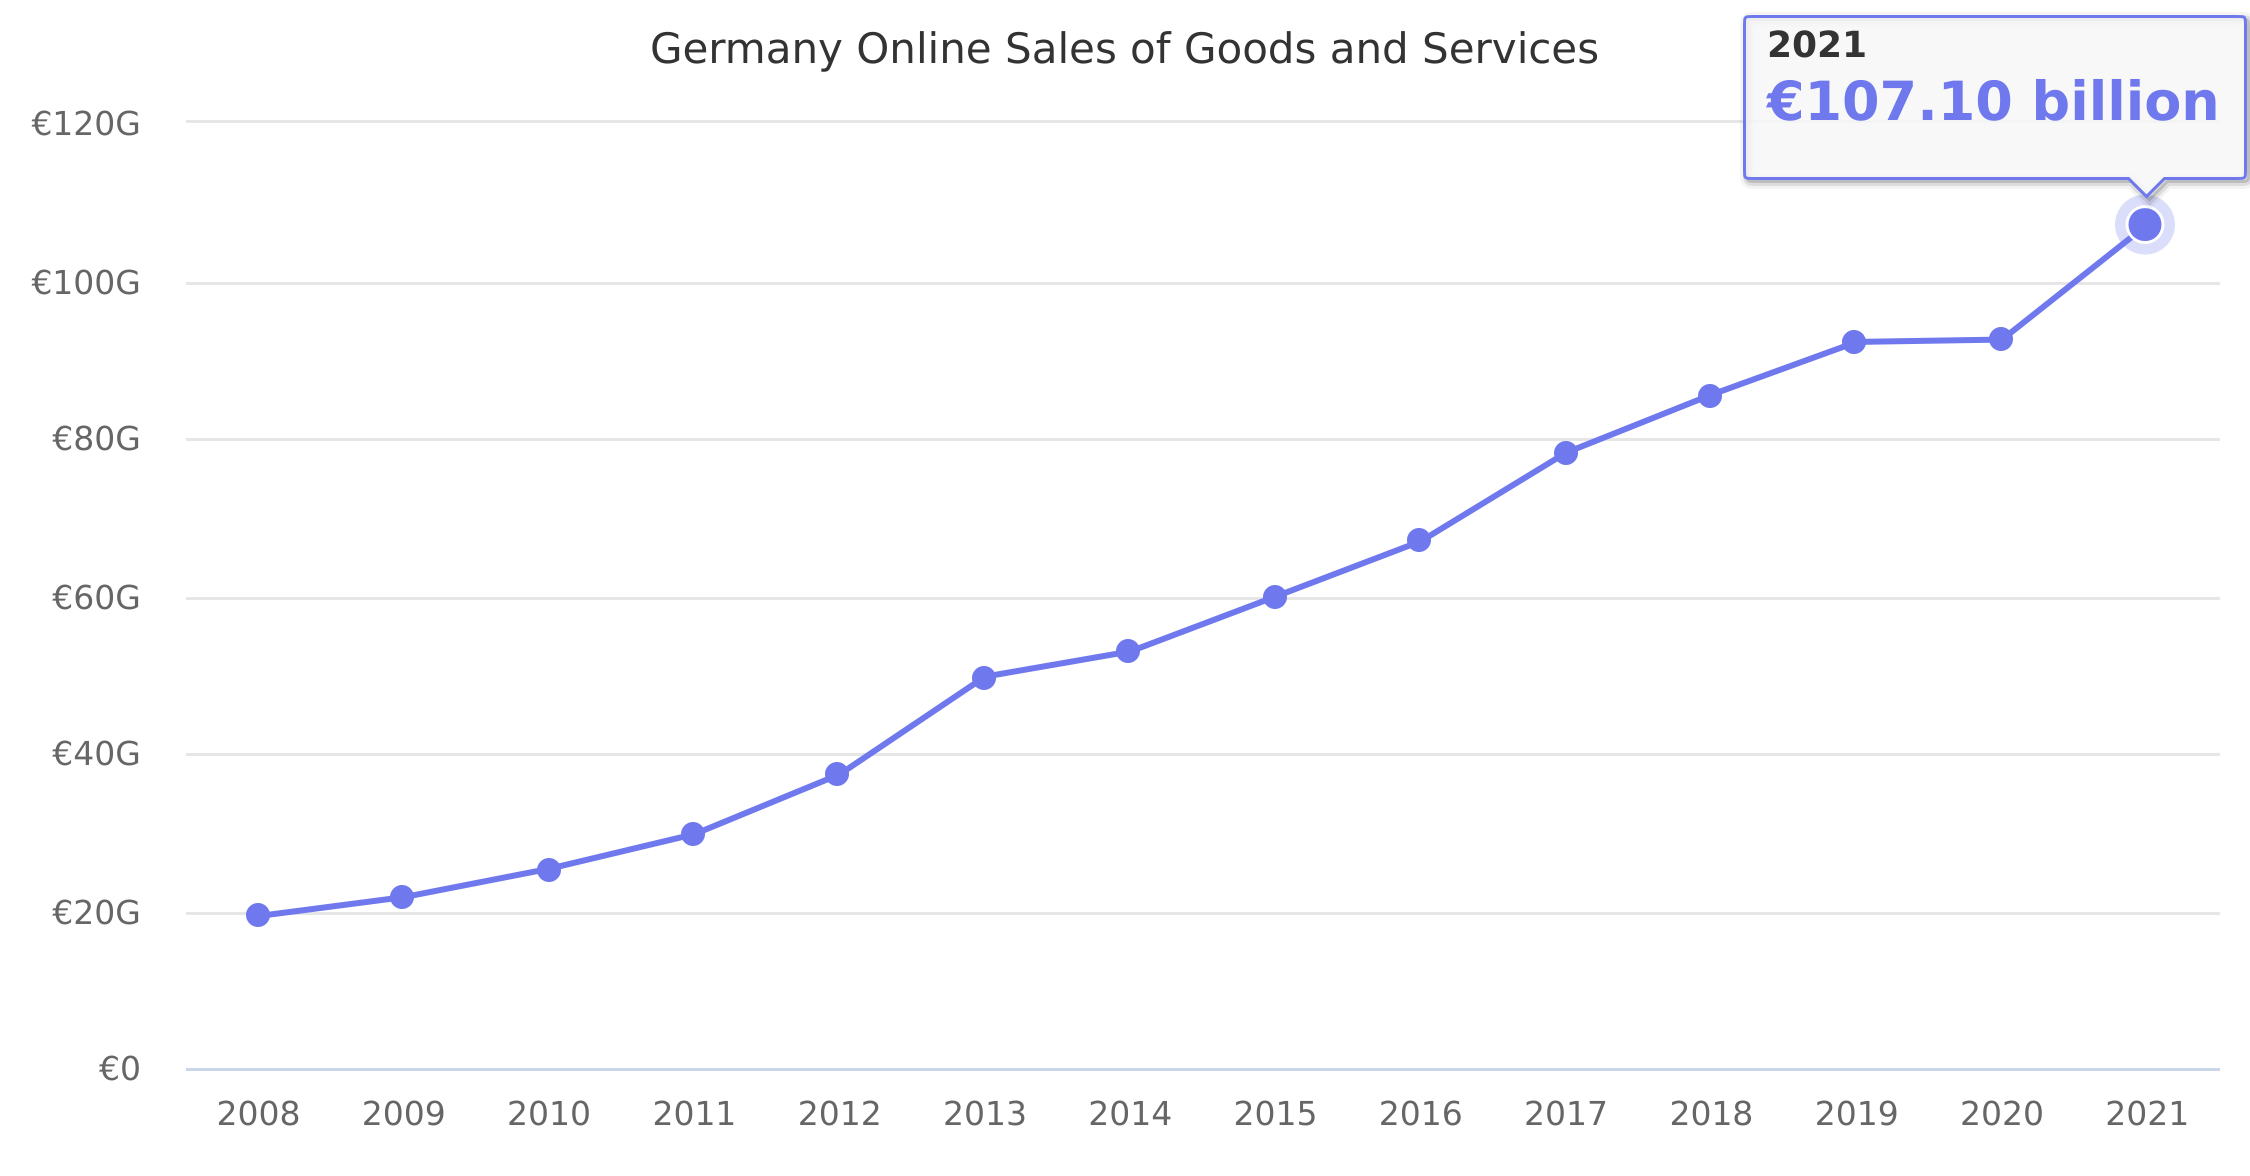 Germany Online Sales of Goods and Services 2008-2017